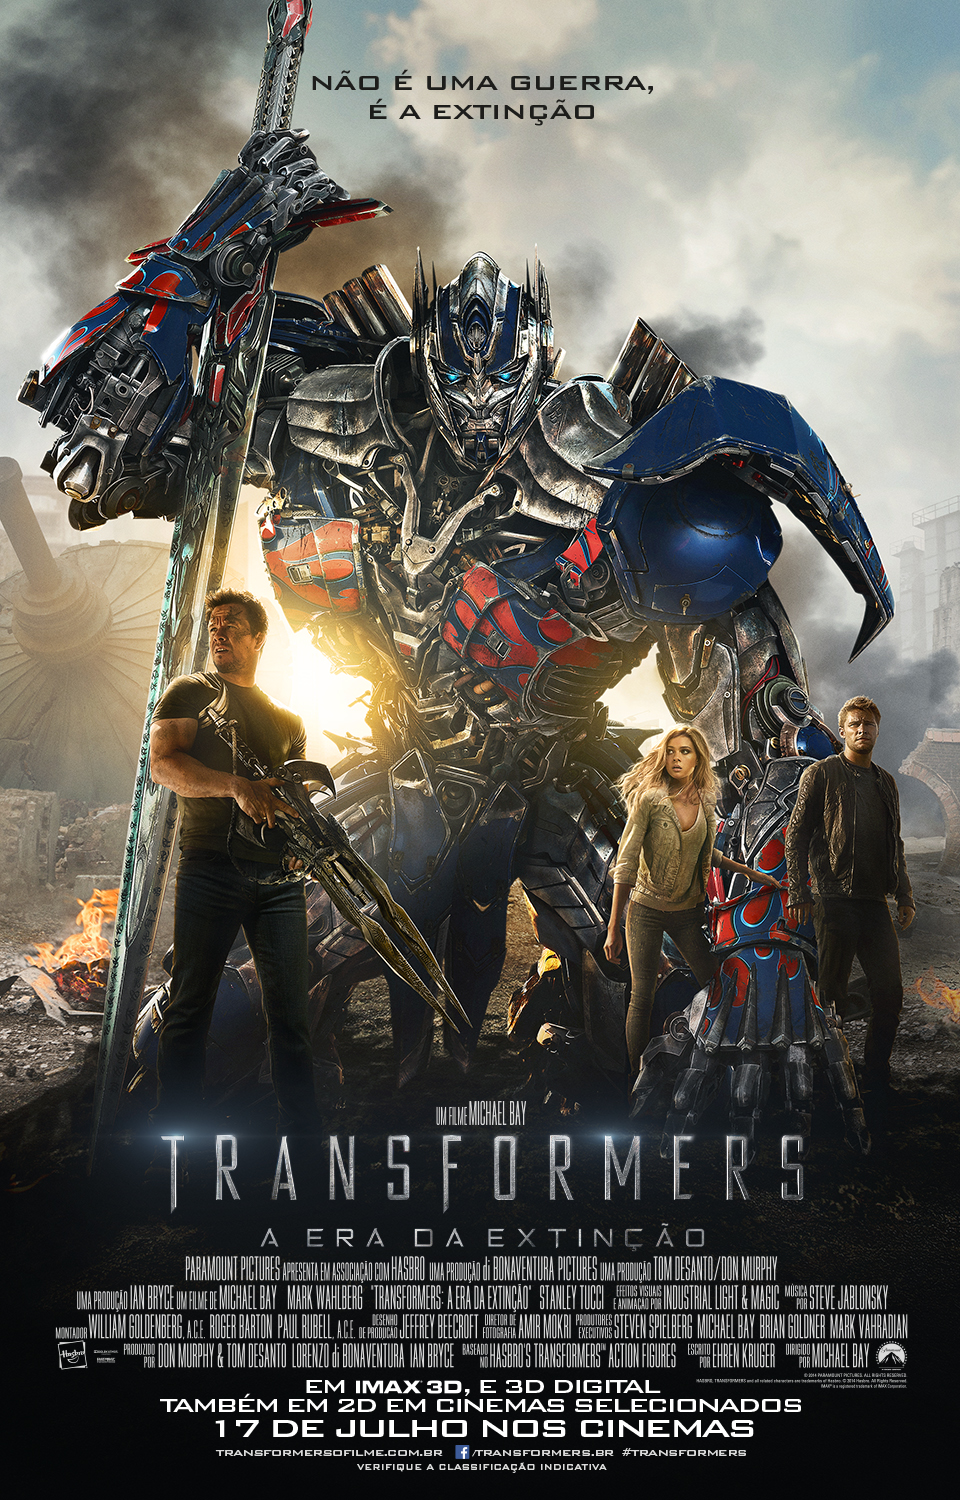 Transformers Age of Extinction-Official Poster Banner PROMO XLG-21MAIO2014-02